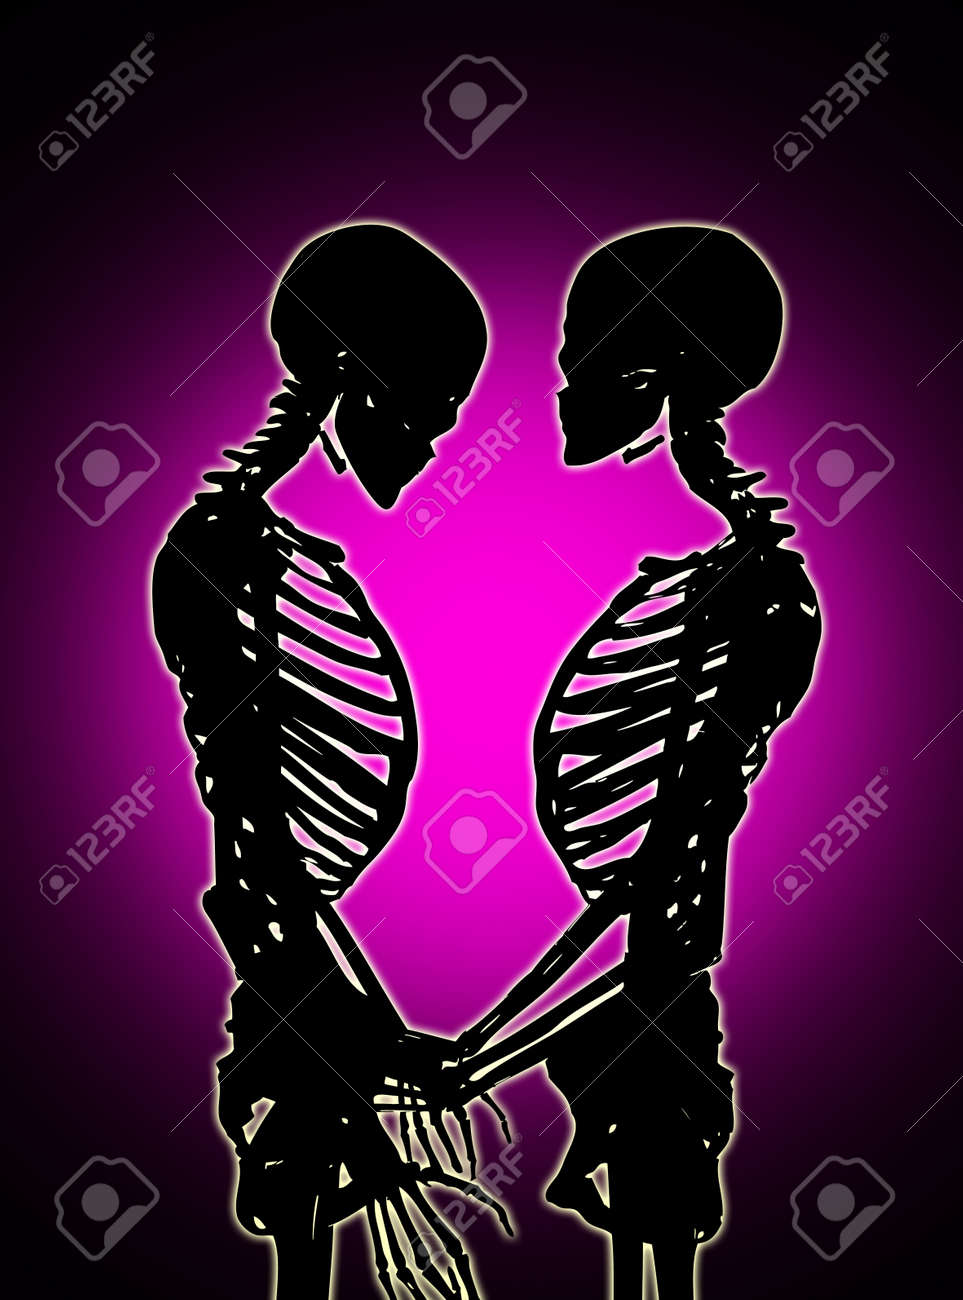 Male and female skeleton in a loving pose. Stock Photo - 17289842